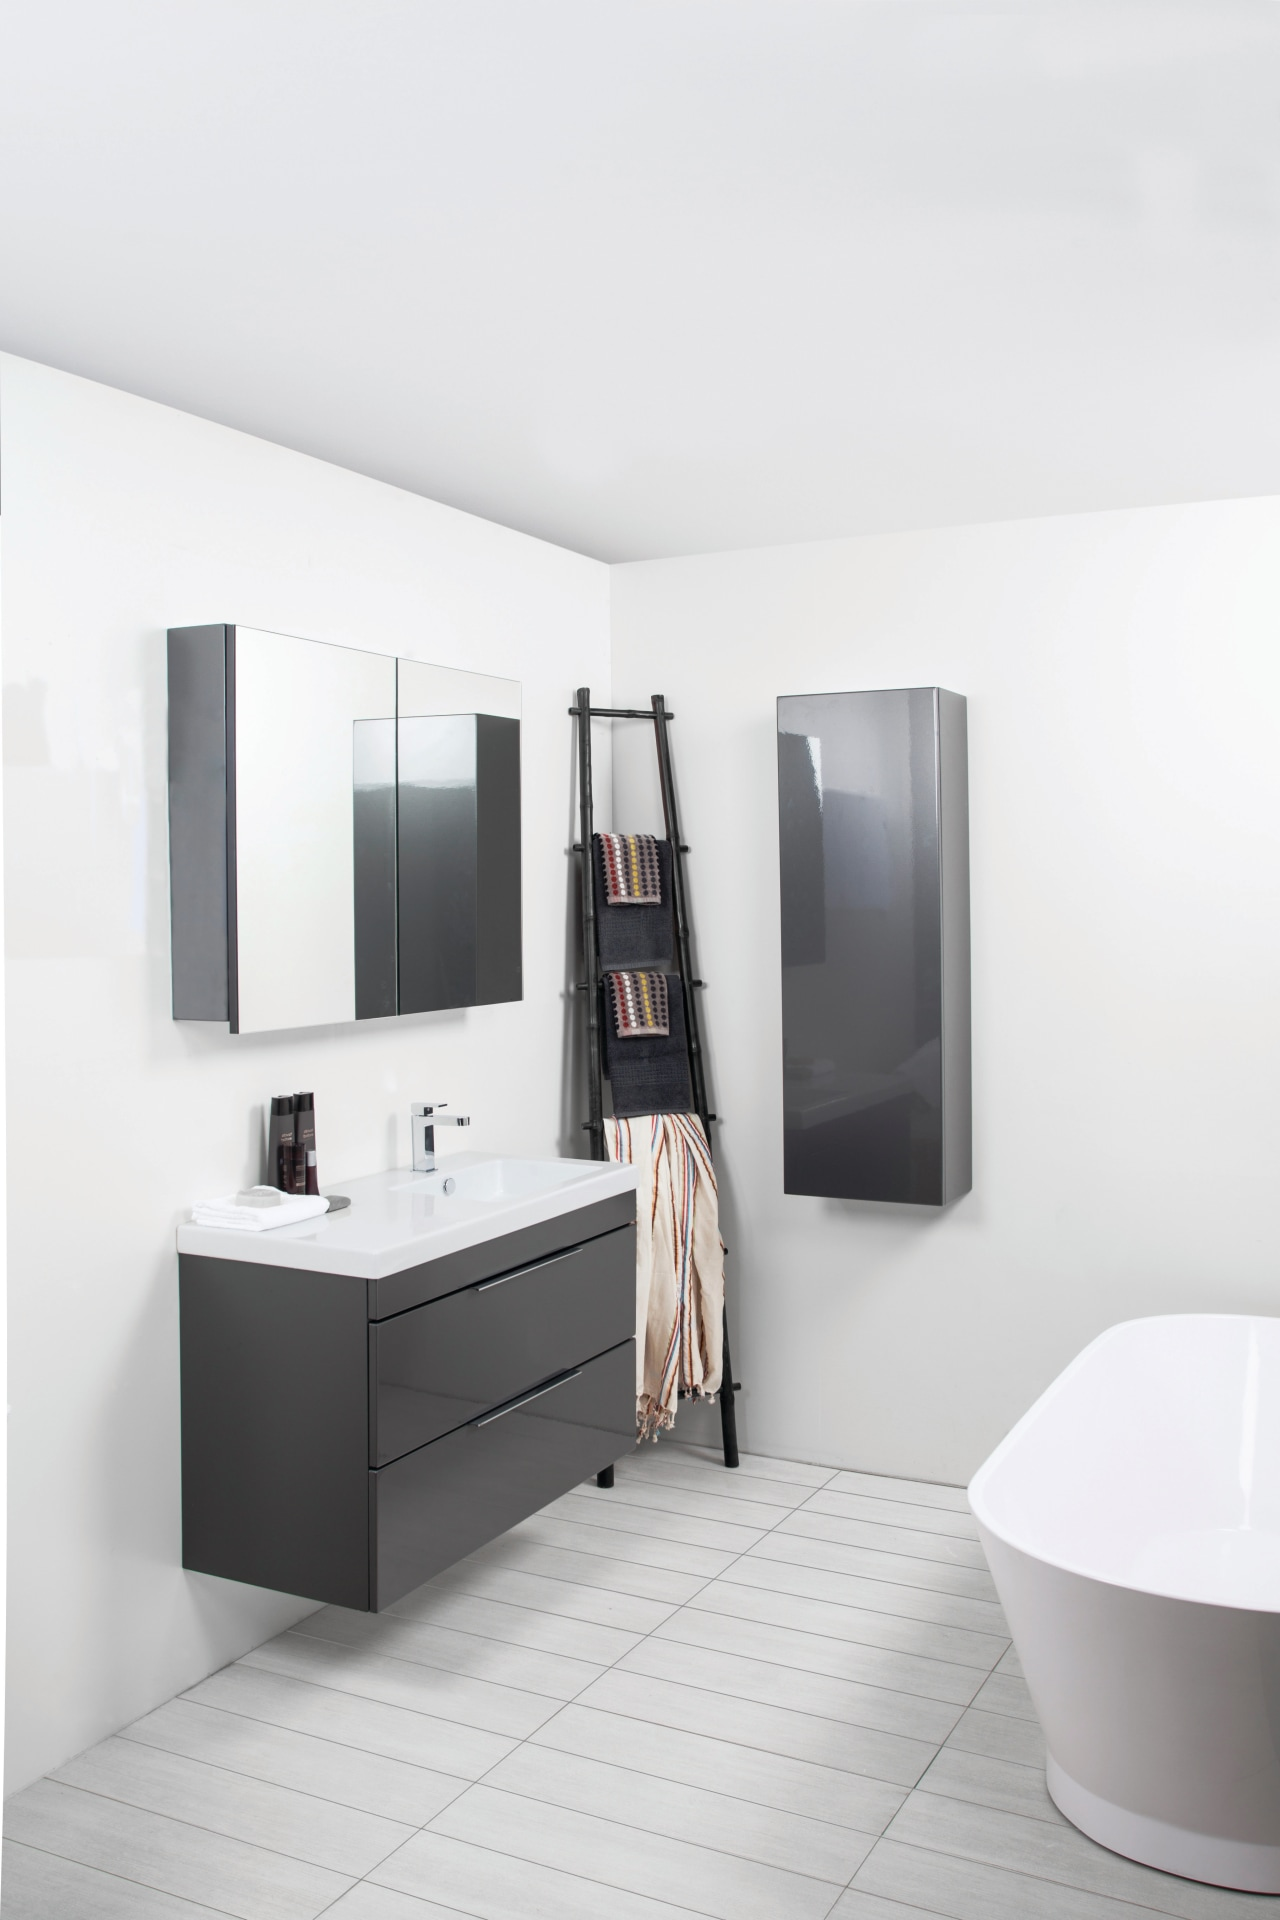 This bathroom highlights Adesso bathroomware, which combines European bathroom, bathroom accessory, bathroom cabinet, floor, interior design, plumbing fixture, product design, room, sink, tap, white